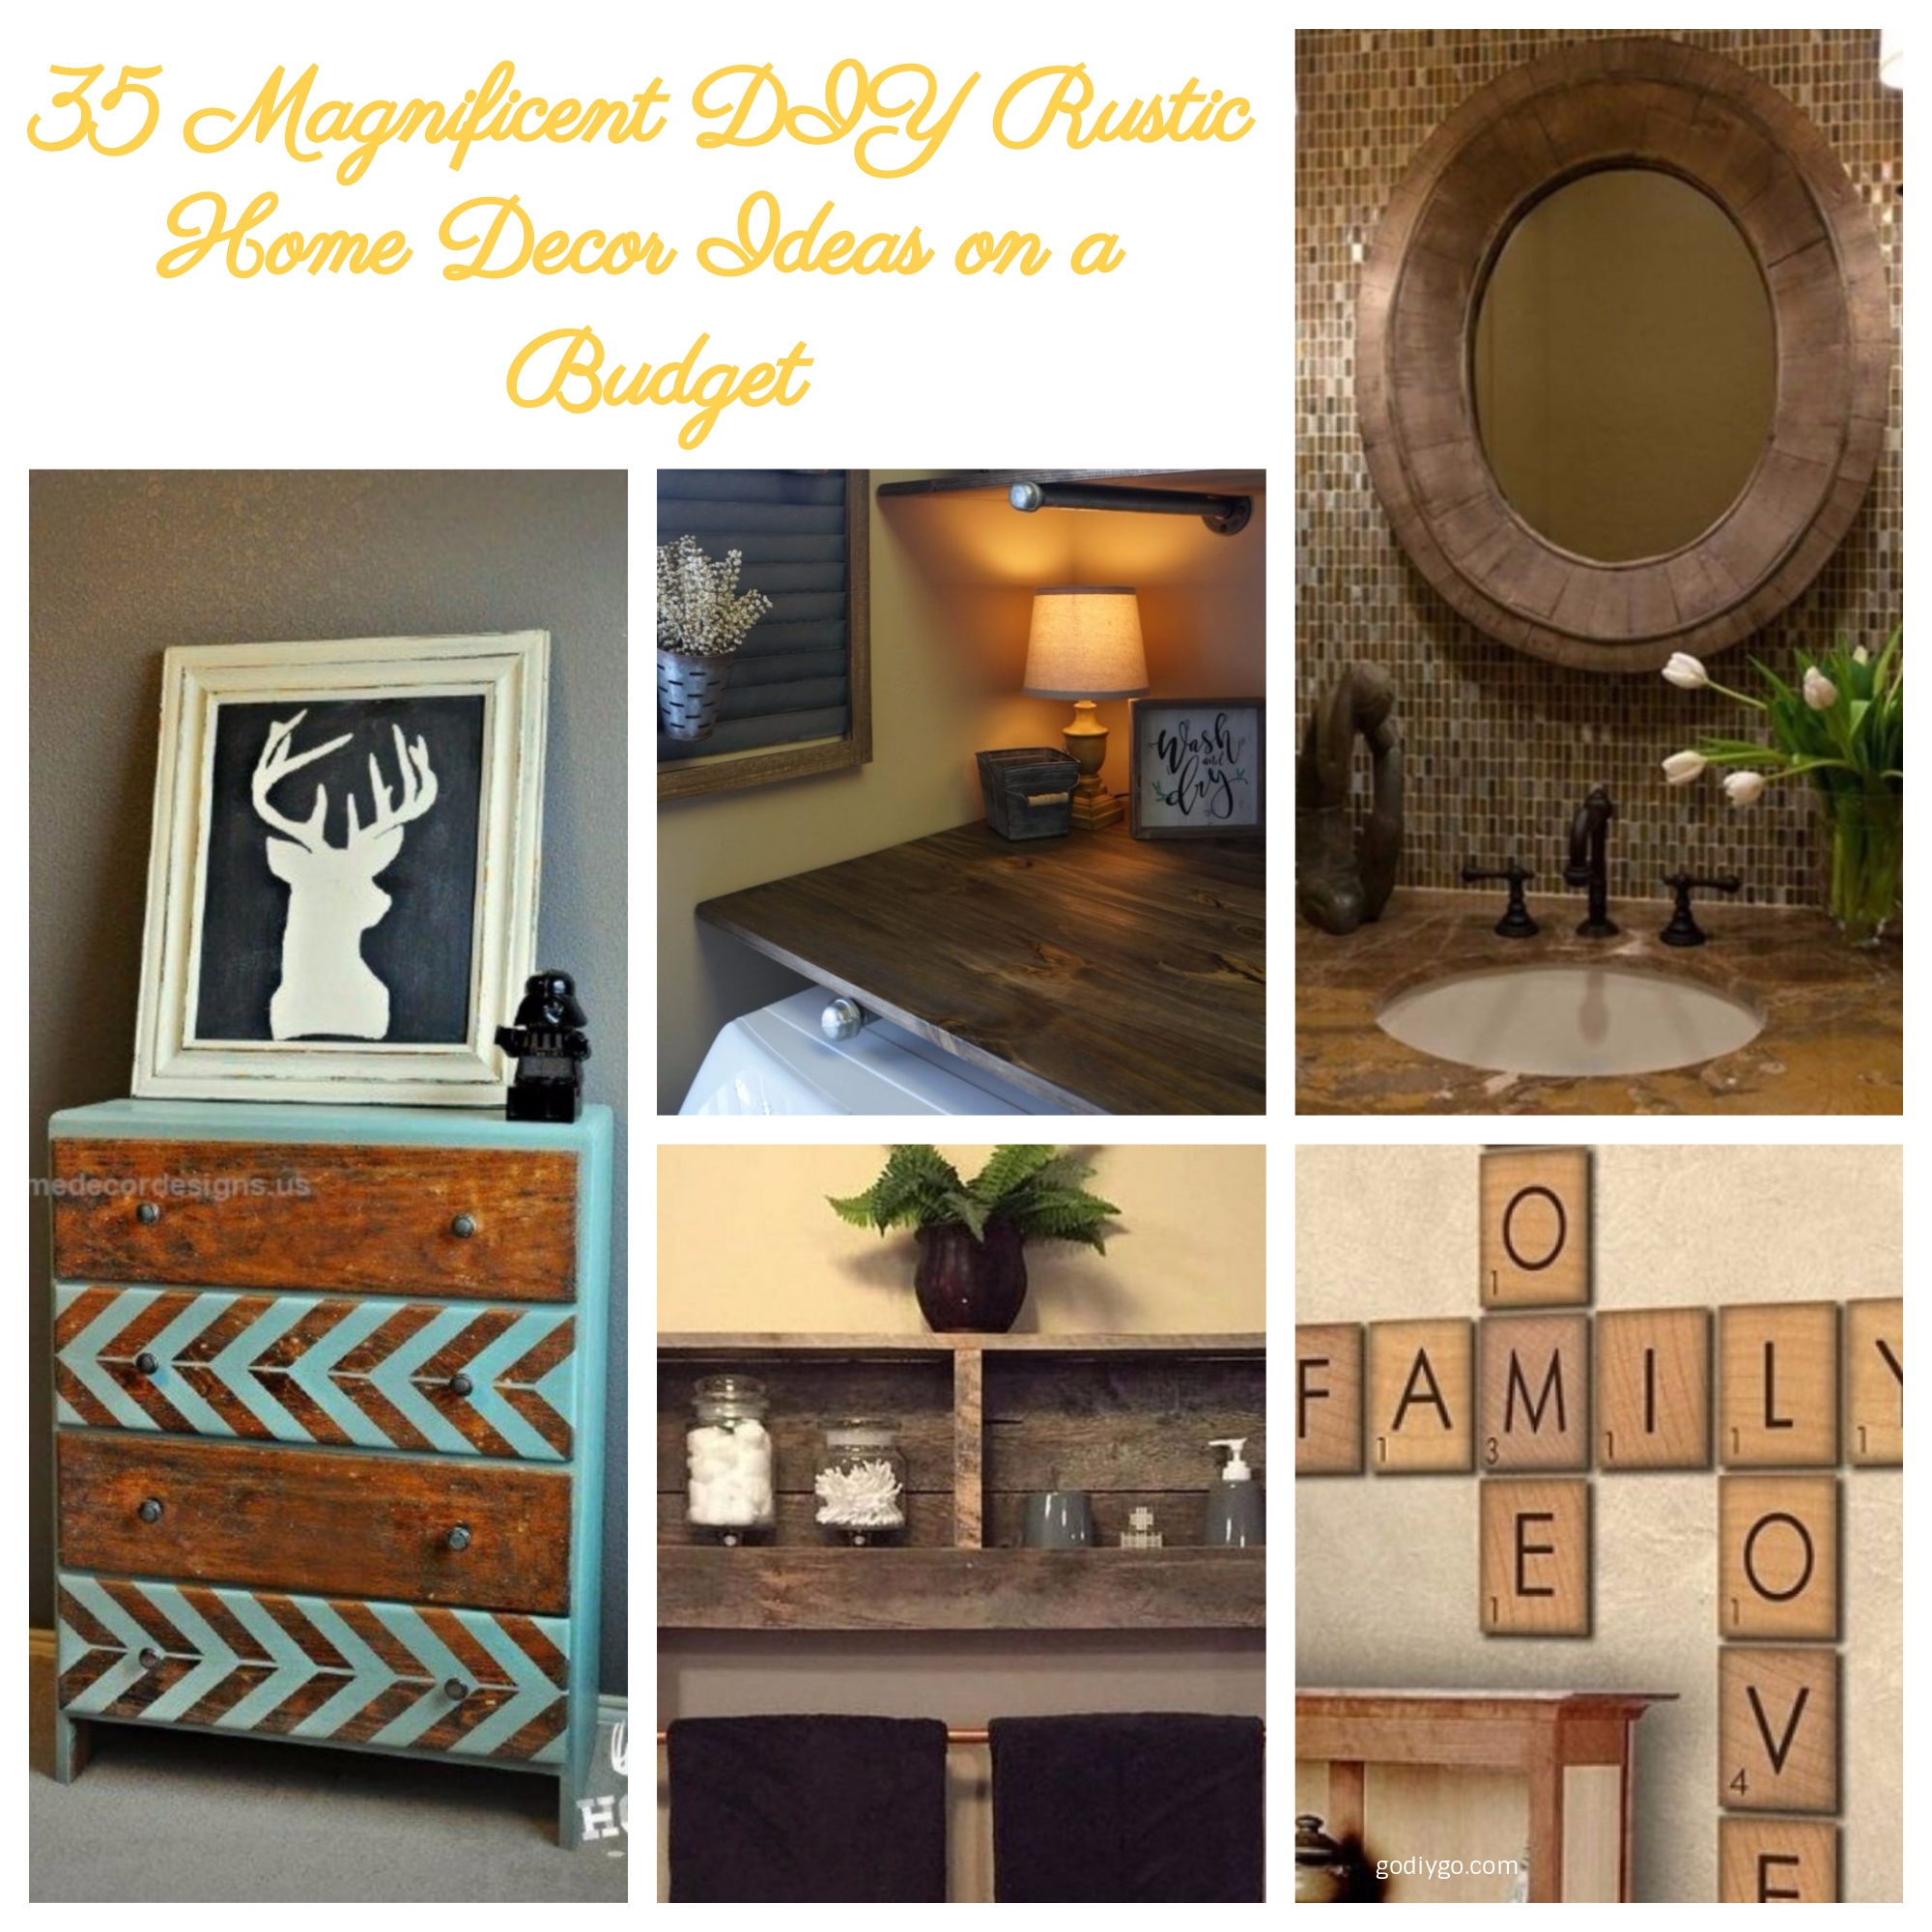 35 magnificent diy rustic home decor ideas on a budget godiygo com Diy ideas for home design